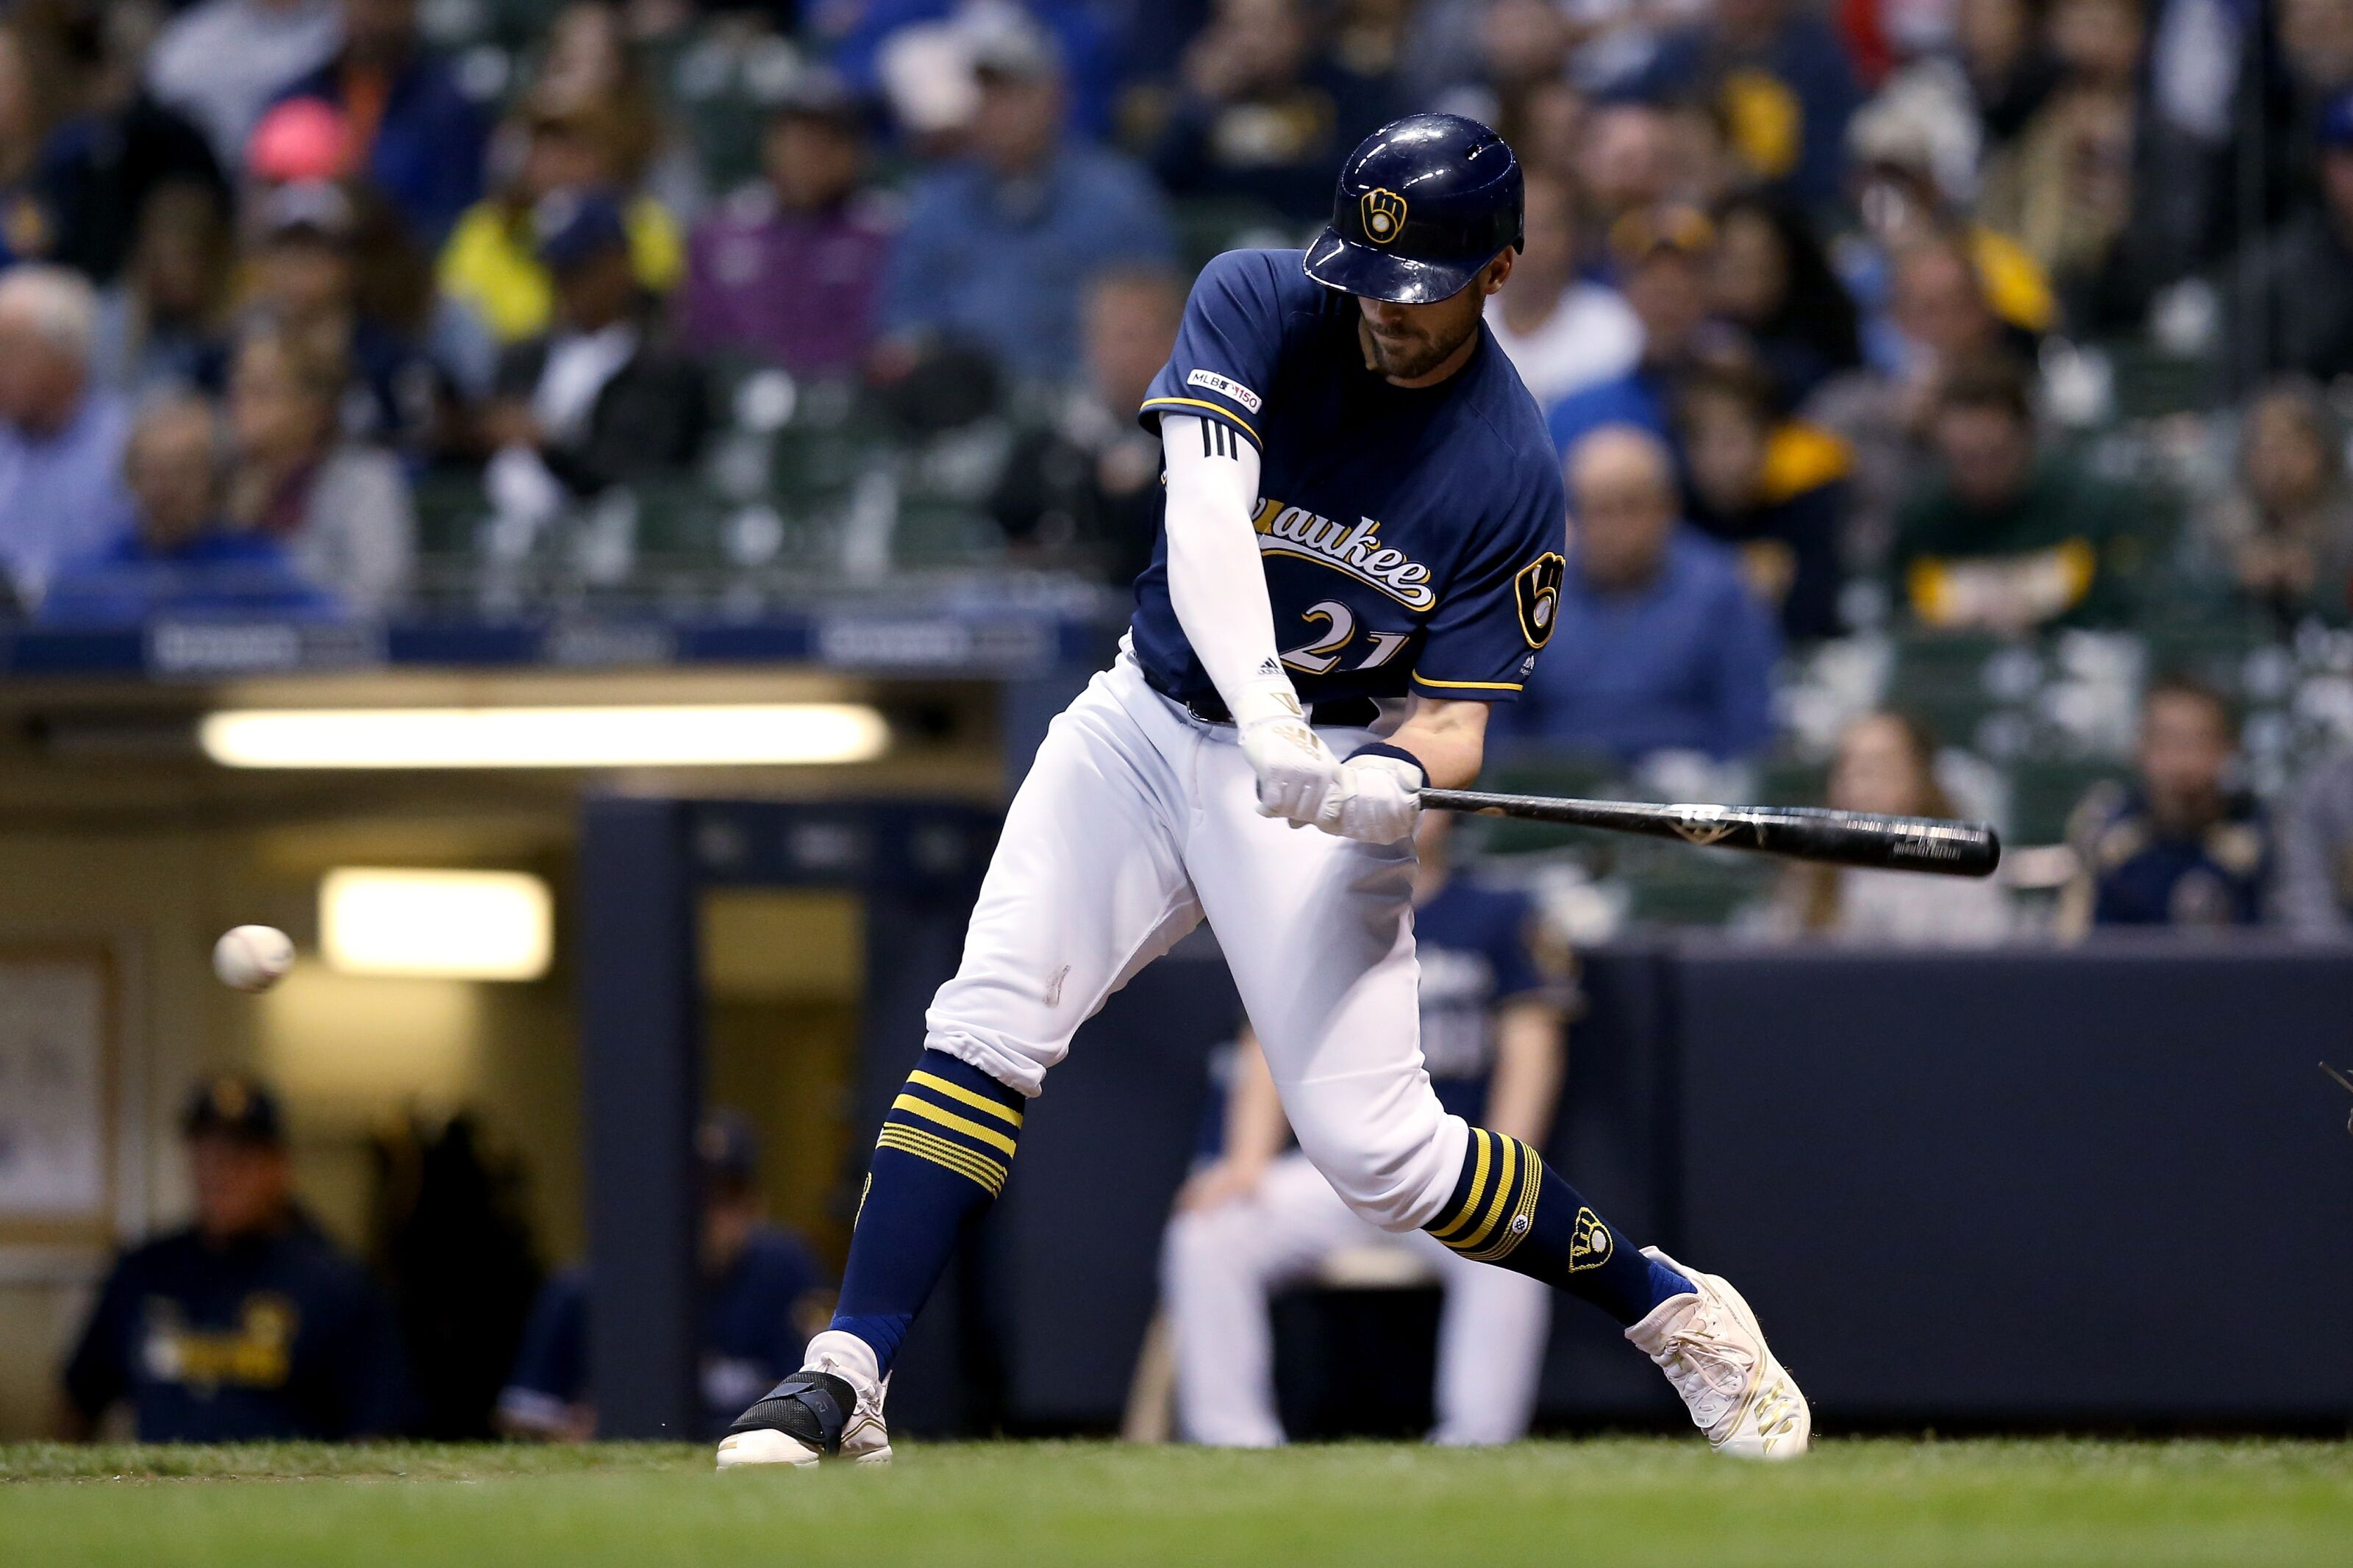 Milwaukee Brewers Minors: Travis Shaw goes hitless in loss